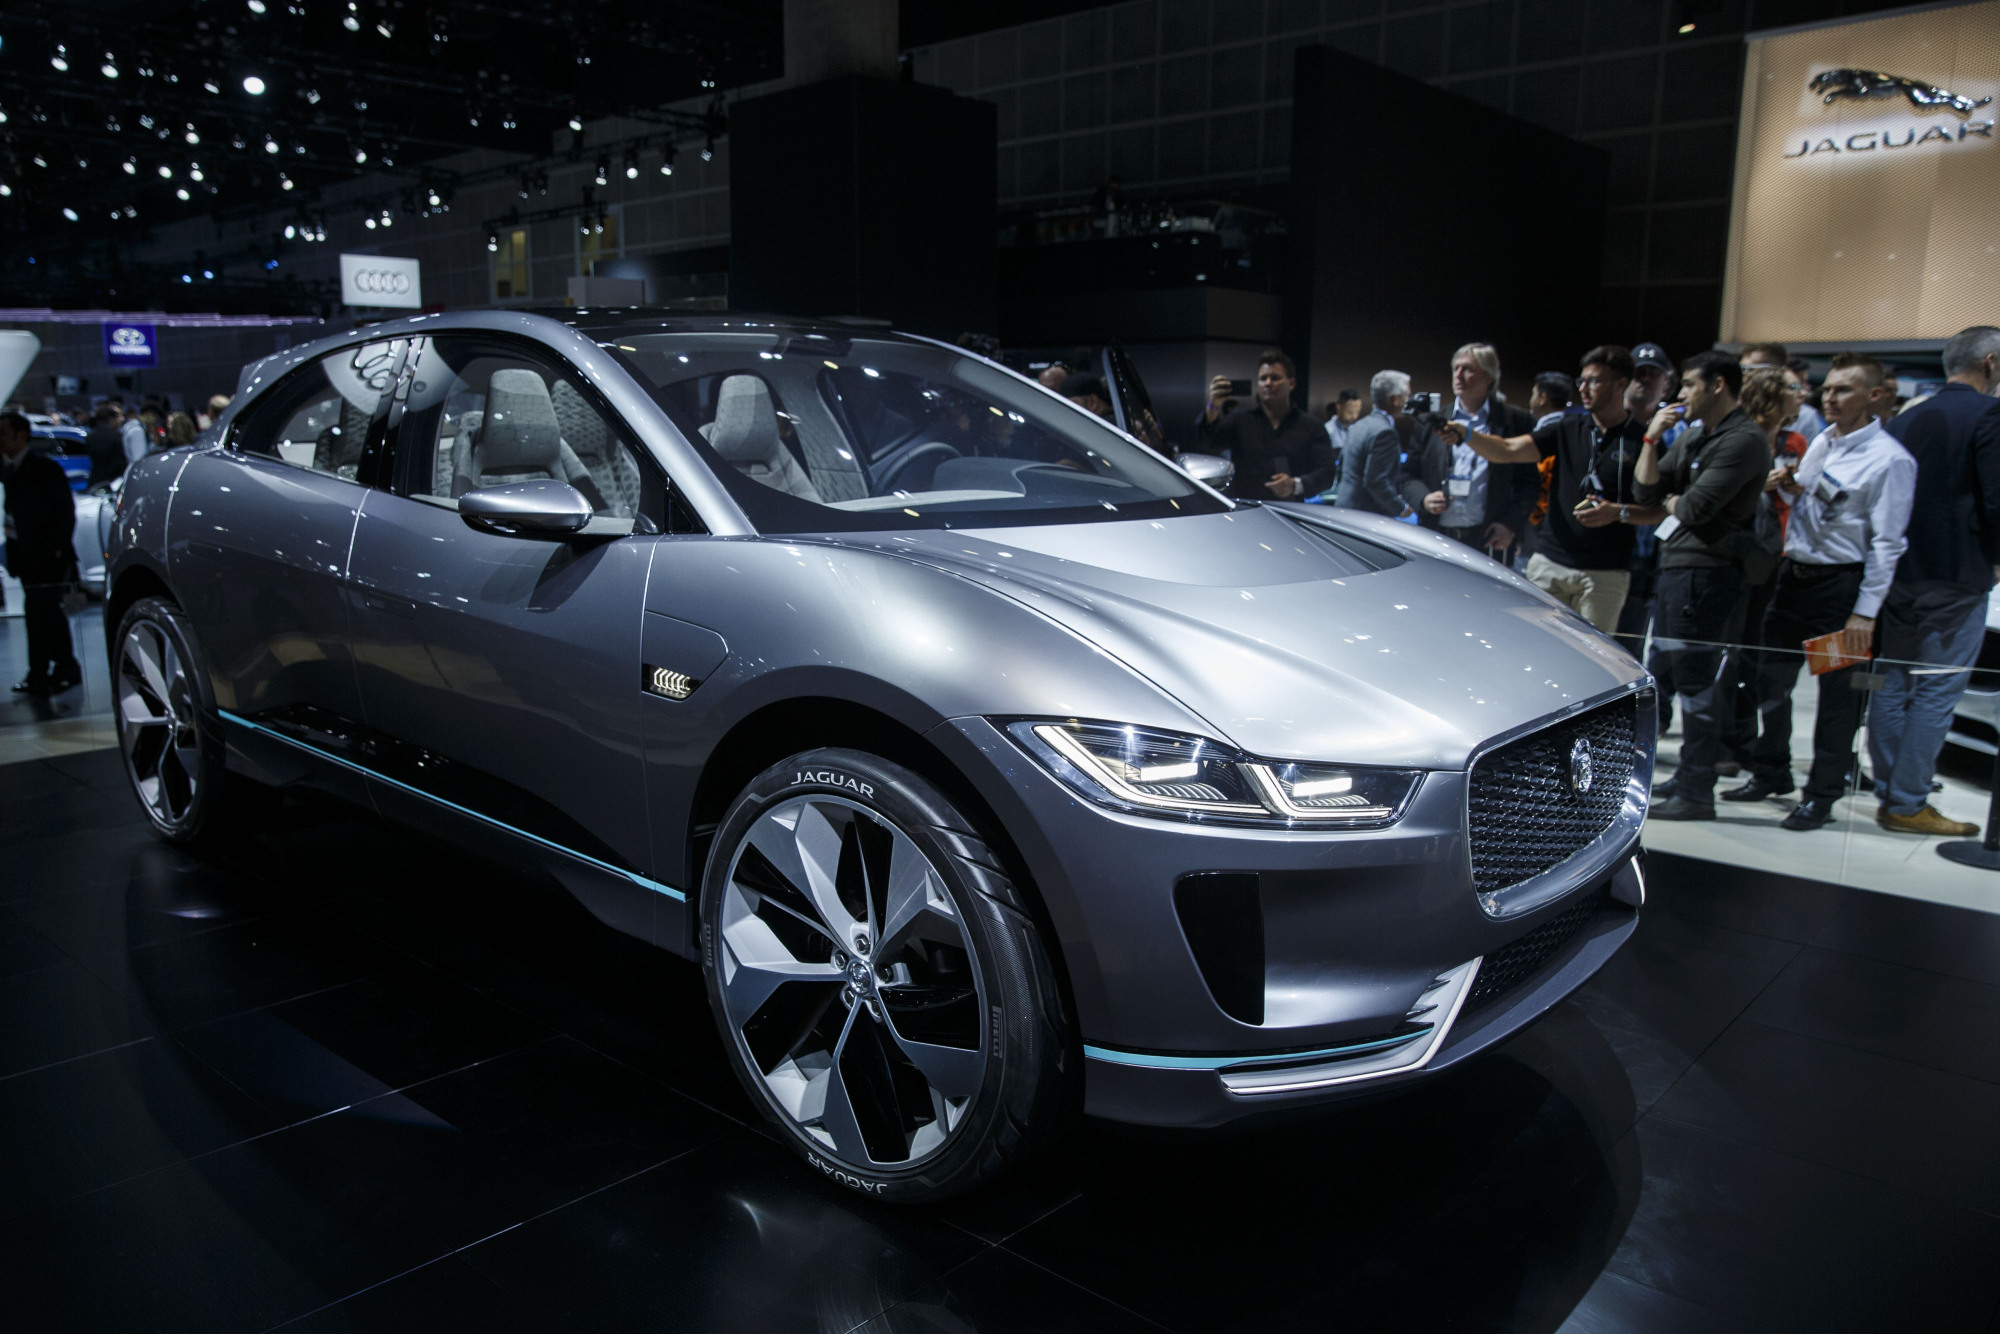 The Jaguar Land Rover Automotive Plc I-Pace Electric Concept luxury sport utility vehicle is displayed during AutoMobility LA ahead of the Los Angeles Auto Show in Los Angeles Nov. 16. | BLOOMBERG